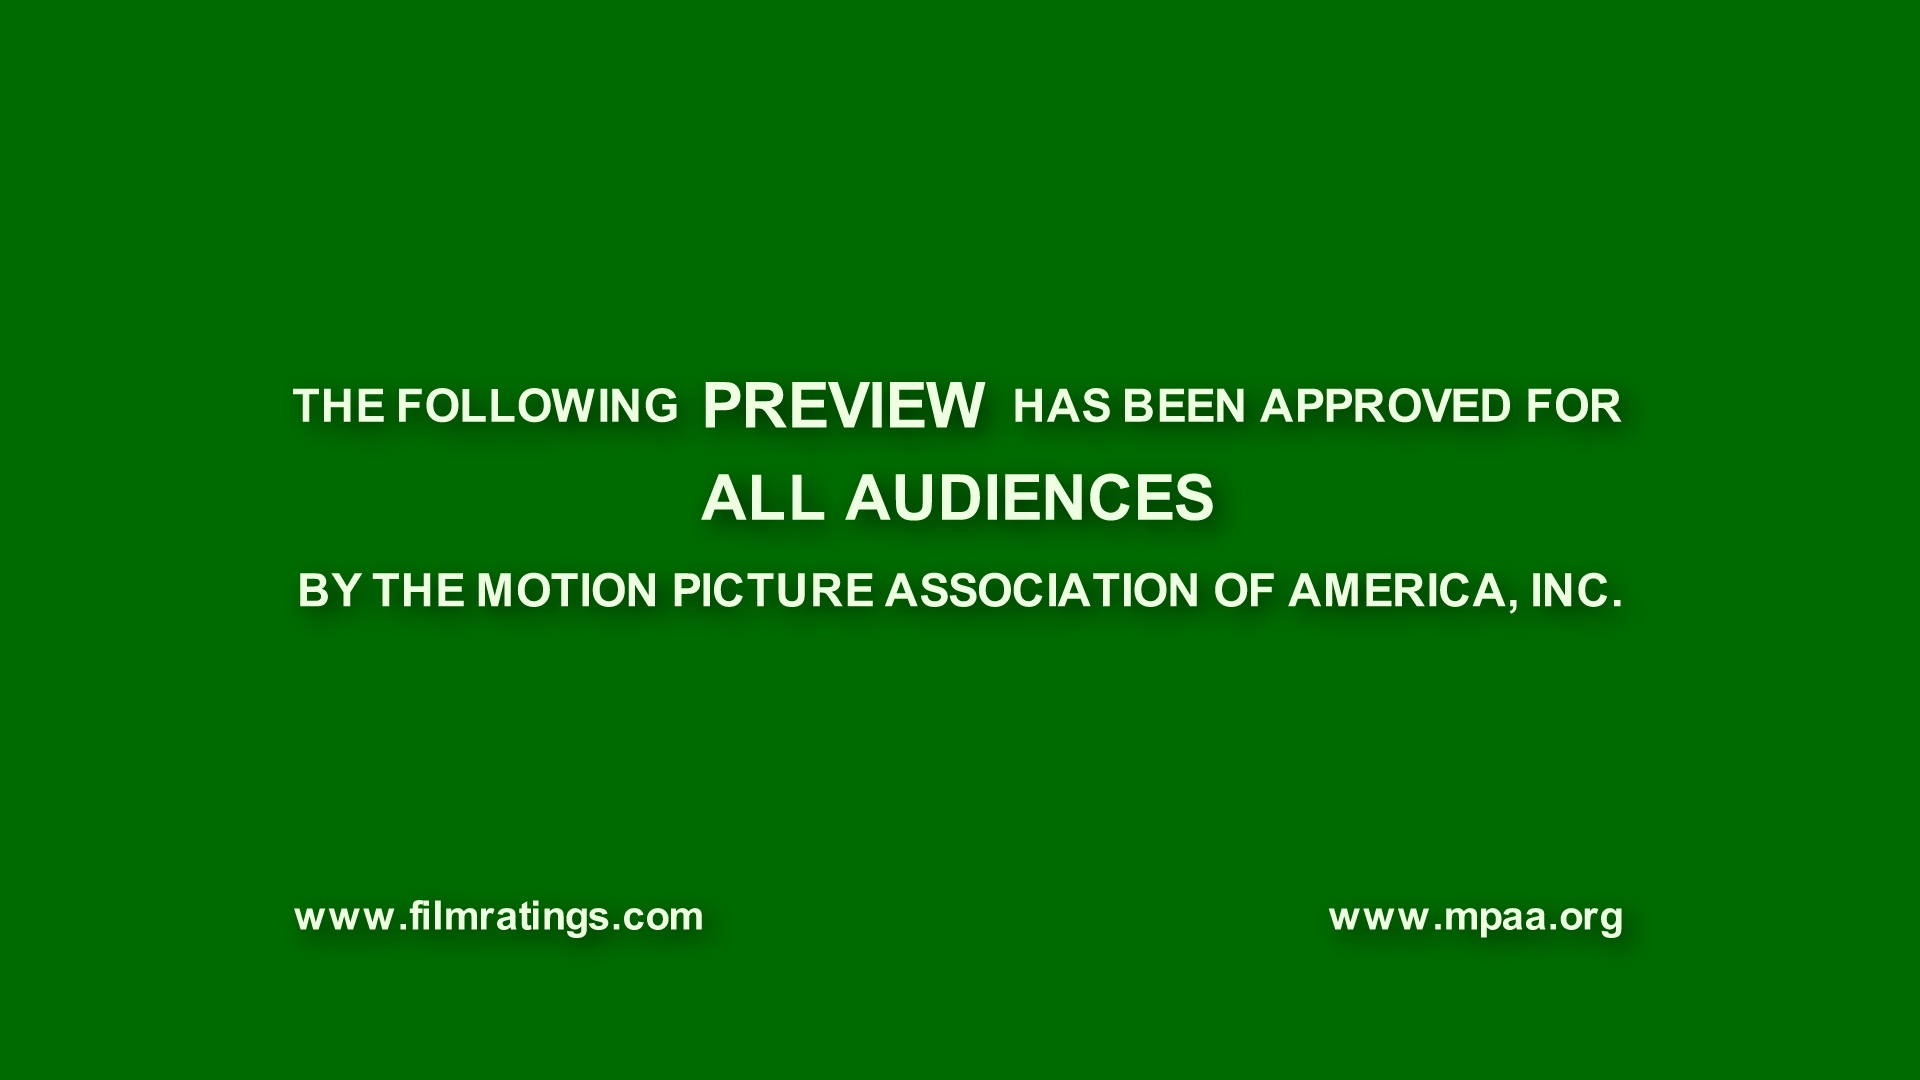 National Association Of Theater Owners Pushes For Shorter Movie Trailers Film